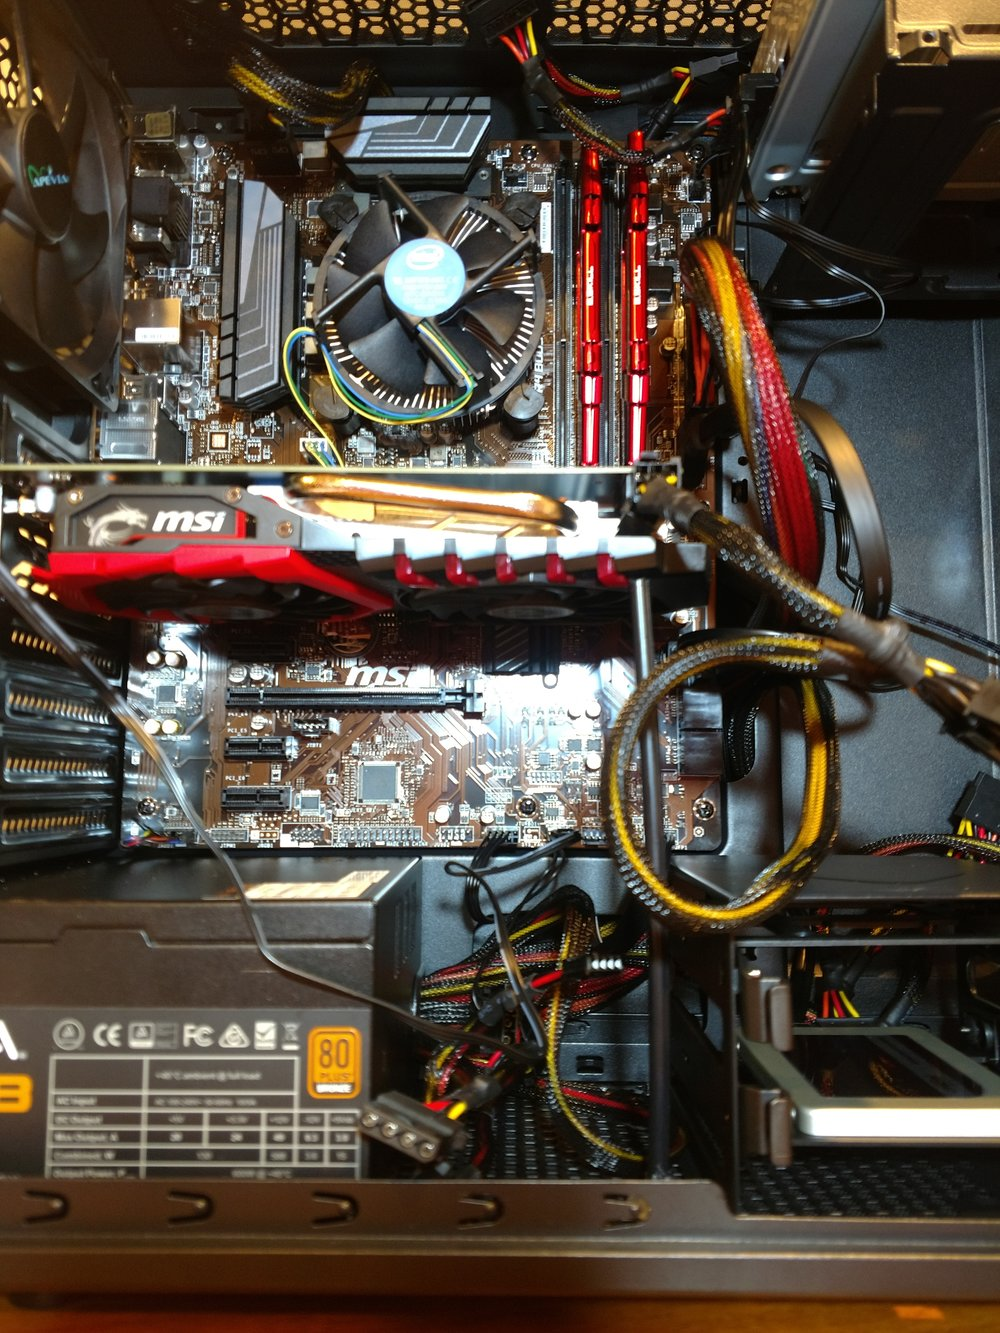 This is a photo of my computer's guts